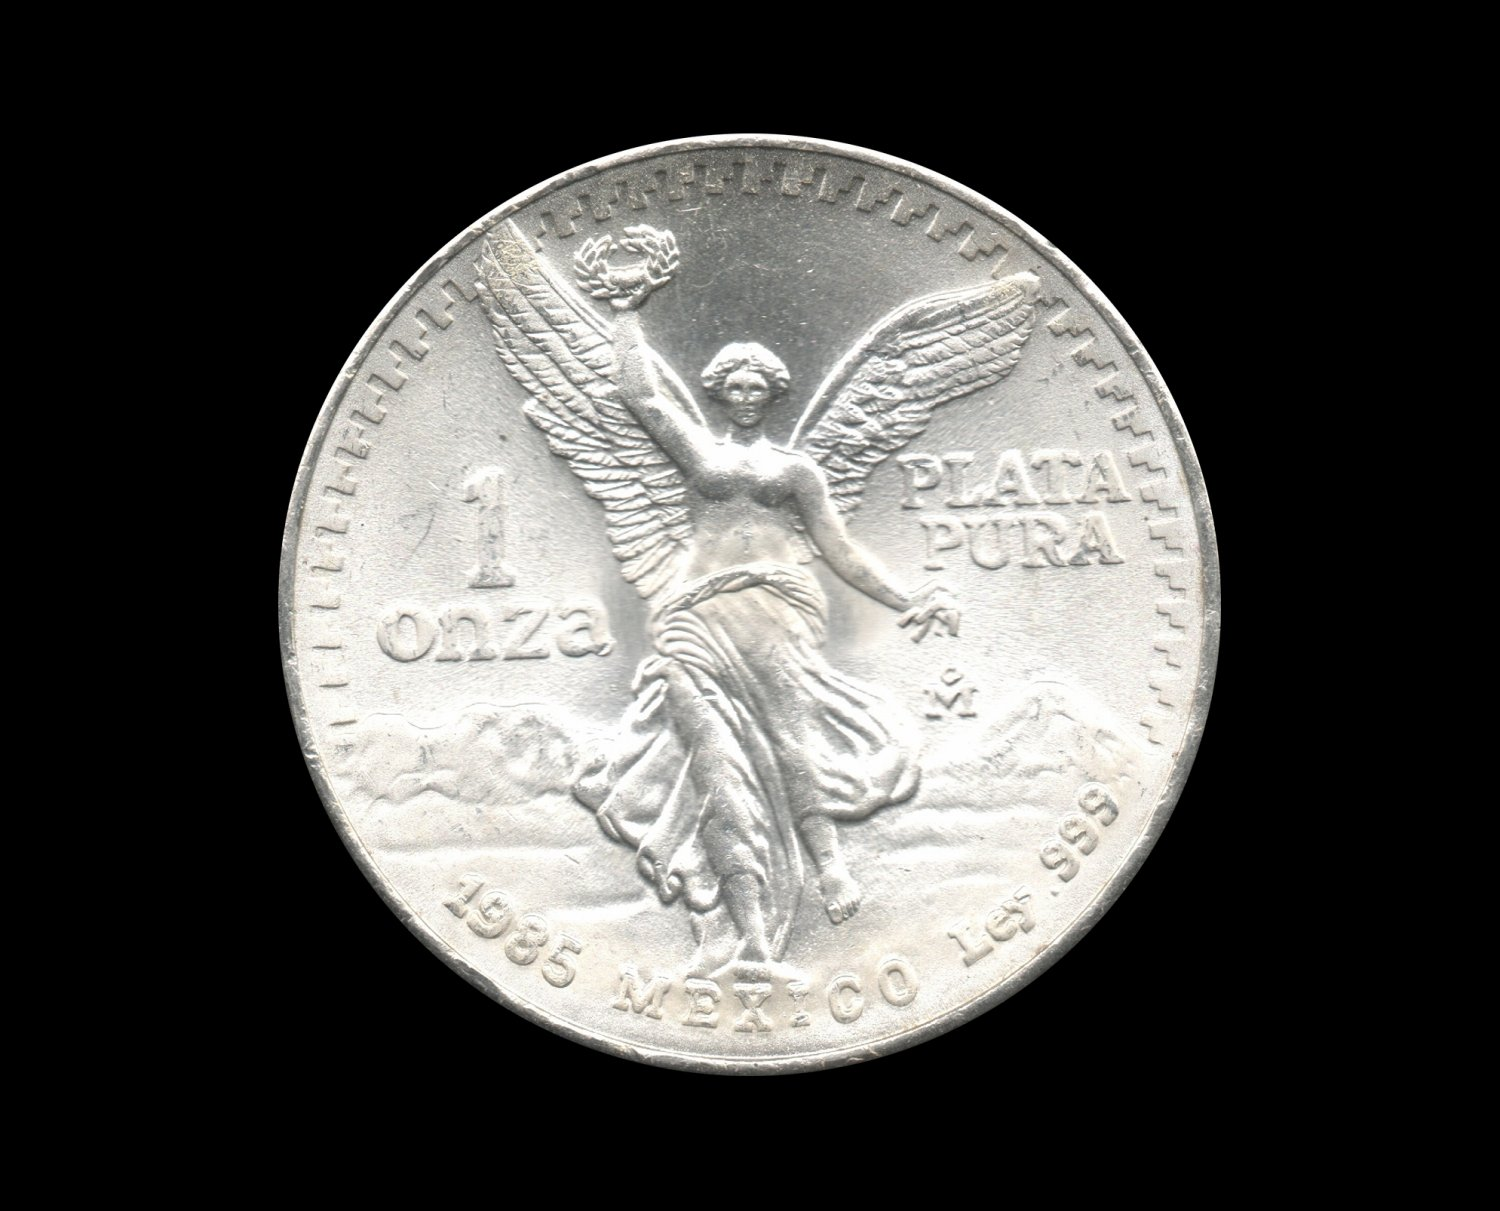 1985 Mexican Libertad Silver Bullion Coin 1 Troy Ounce